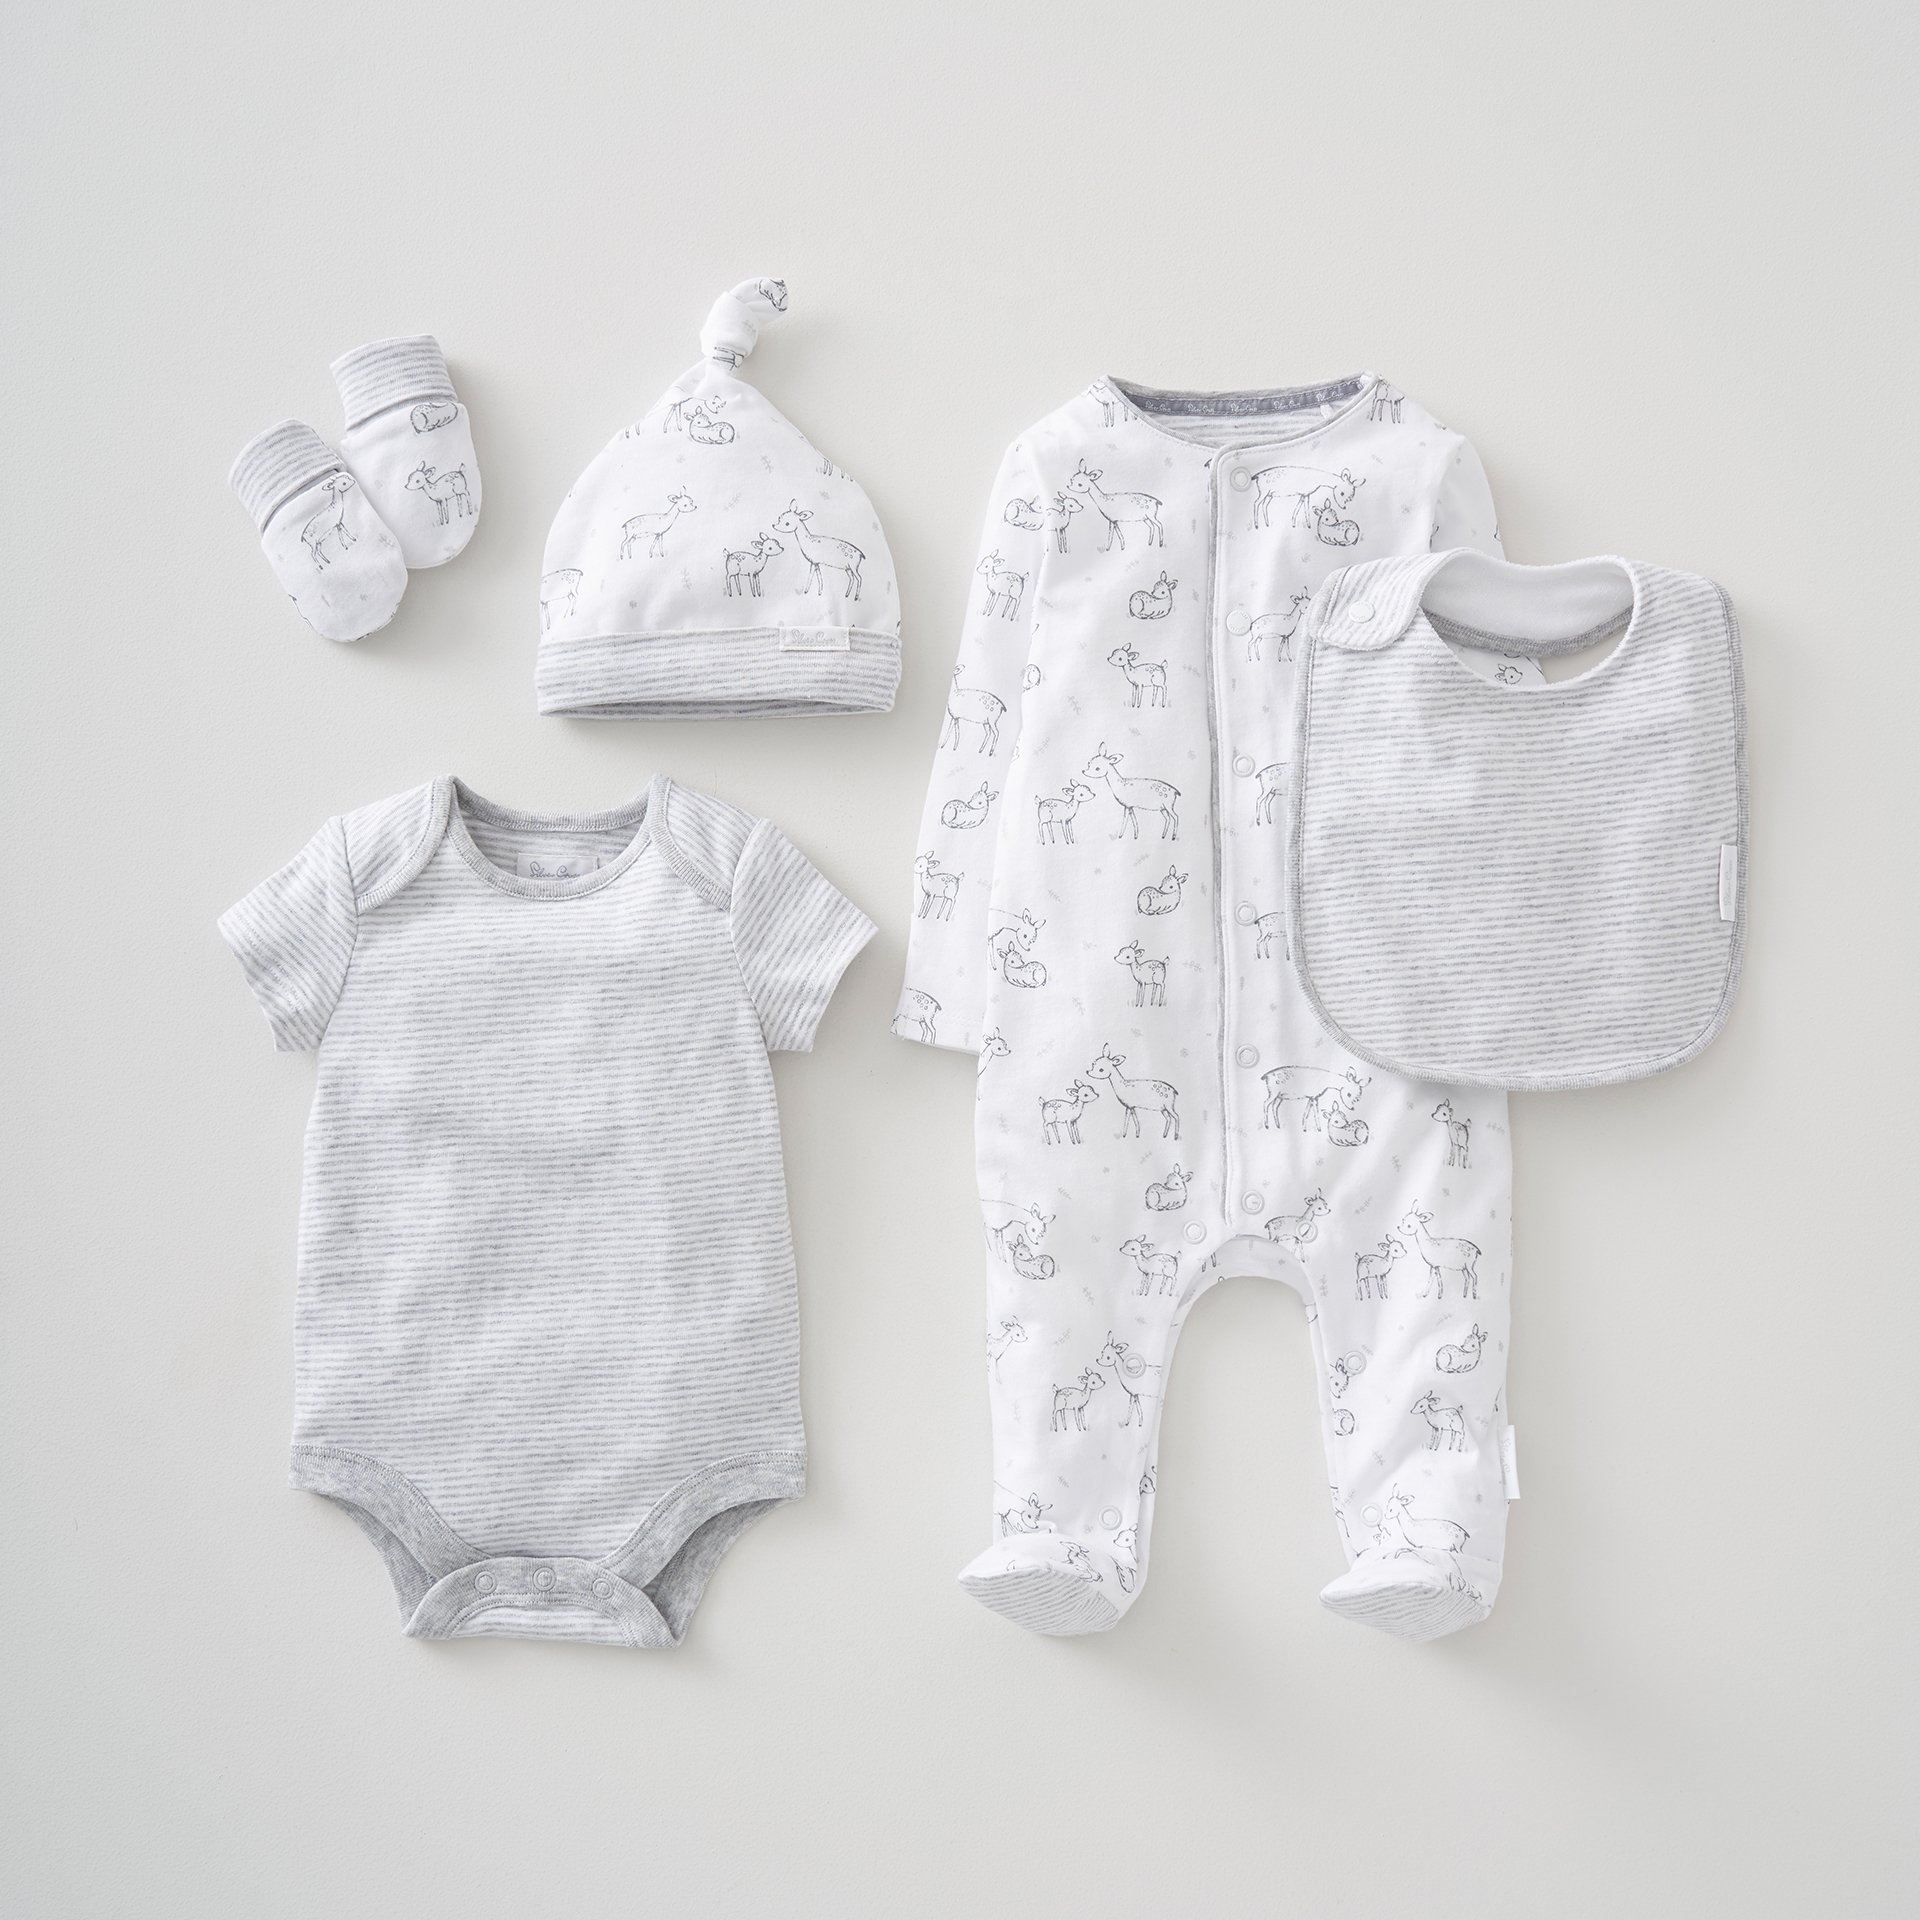 5 Piece New Baby Pack 0-3 Months